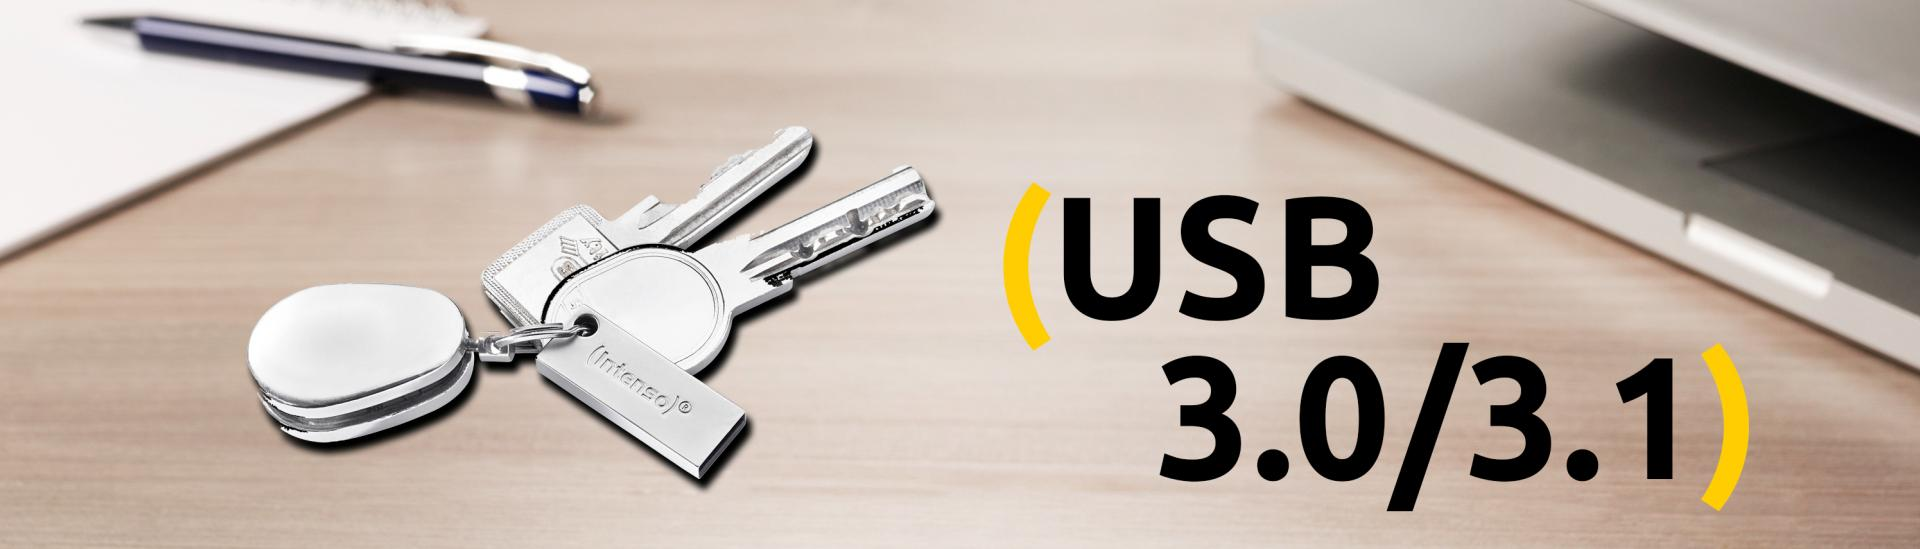 Intenso USB Sticks 3.0